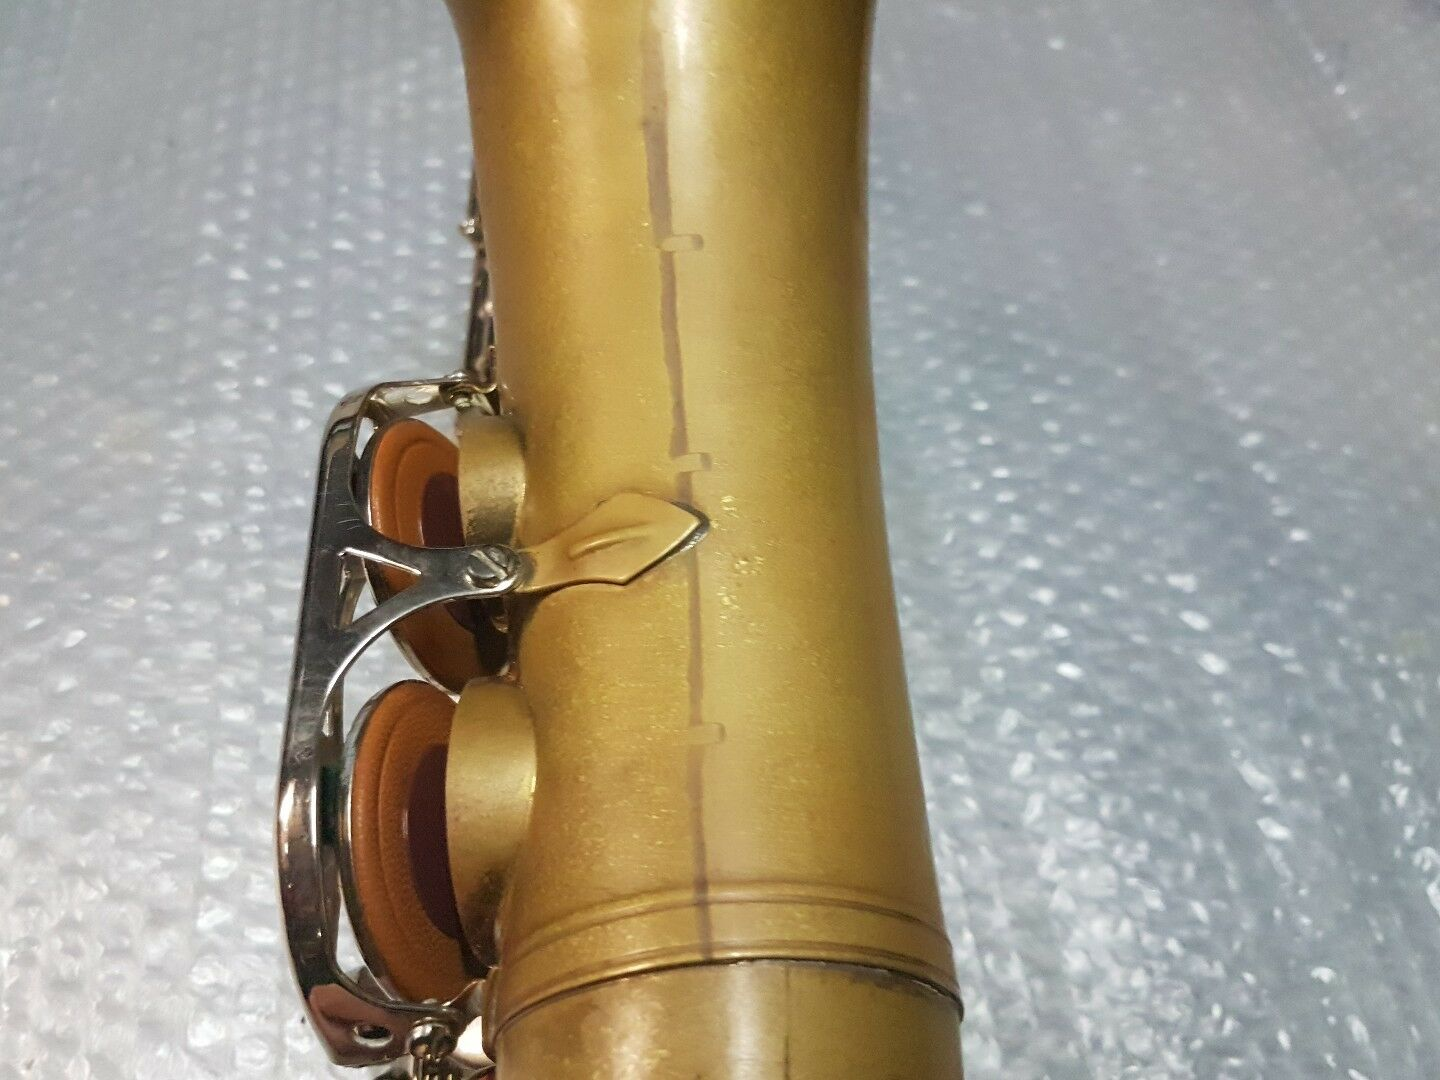 1982 BUESCHER ARISTOCRAT 200 ALT   ALTO SAX   SAXOPHONE - made in USA